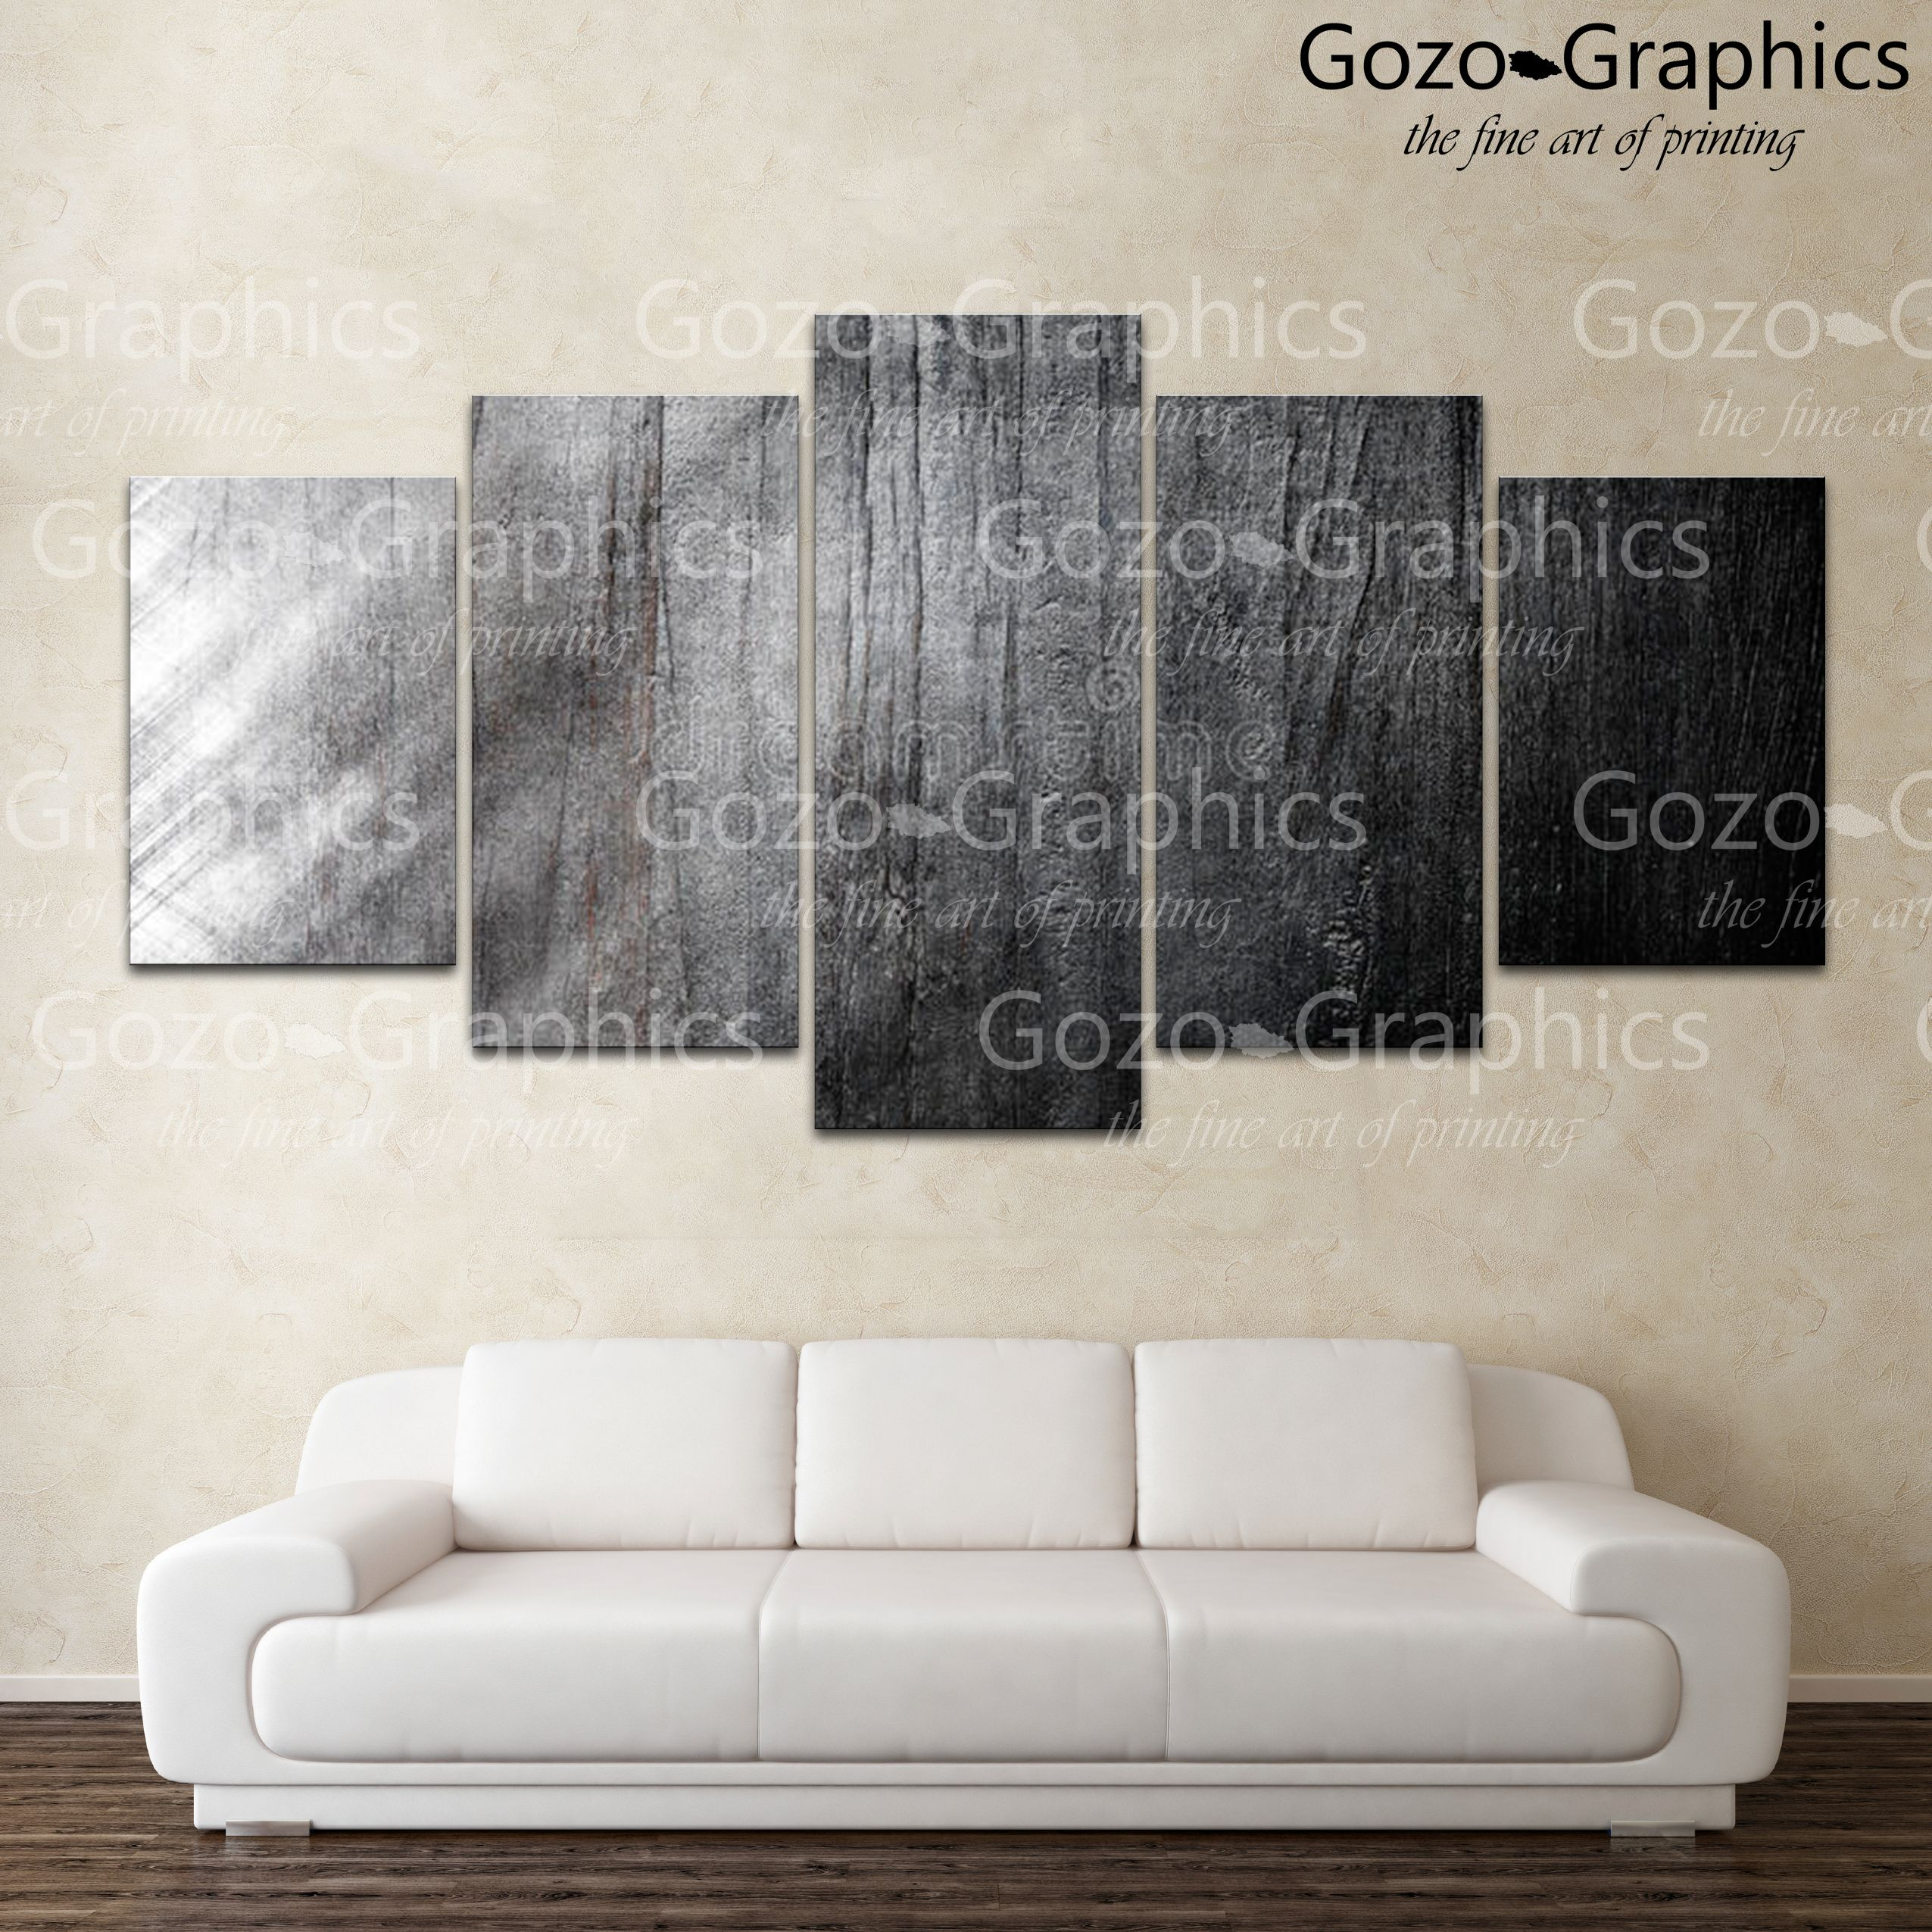 00905 black and white gozo graphics canvas compositions